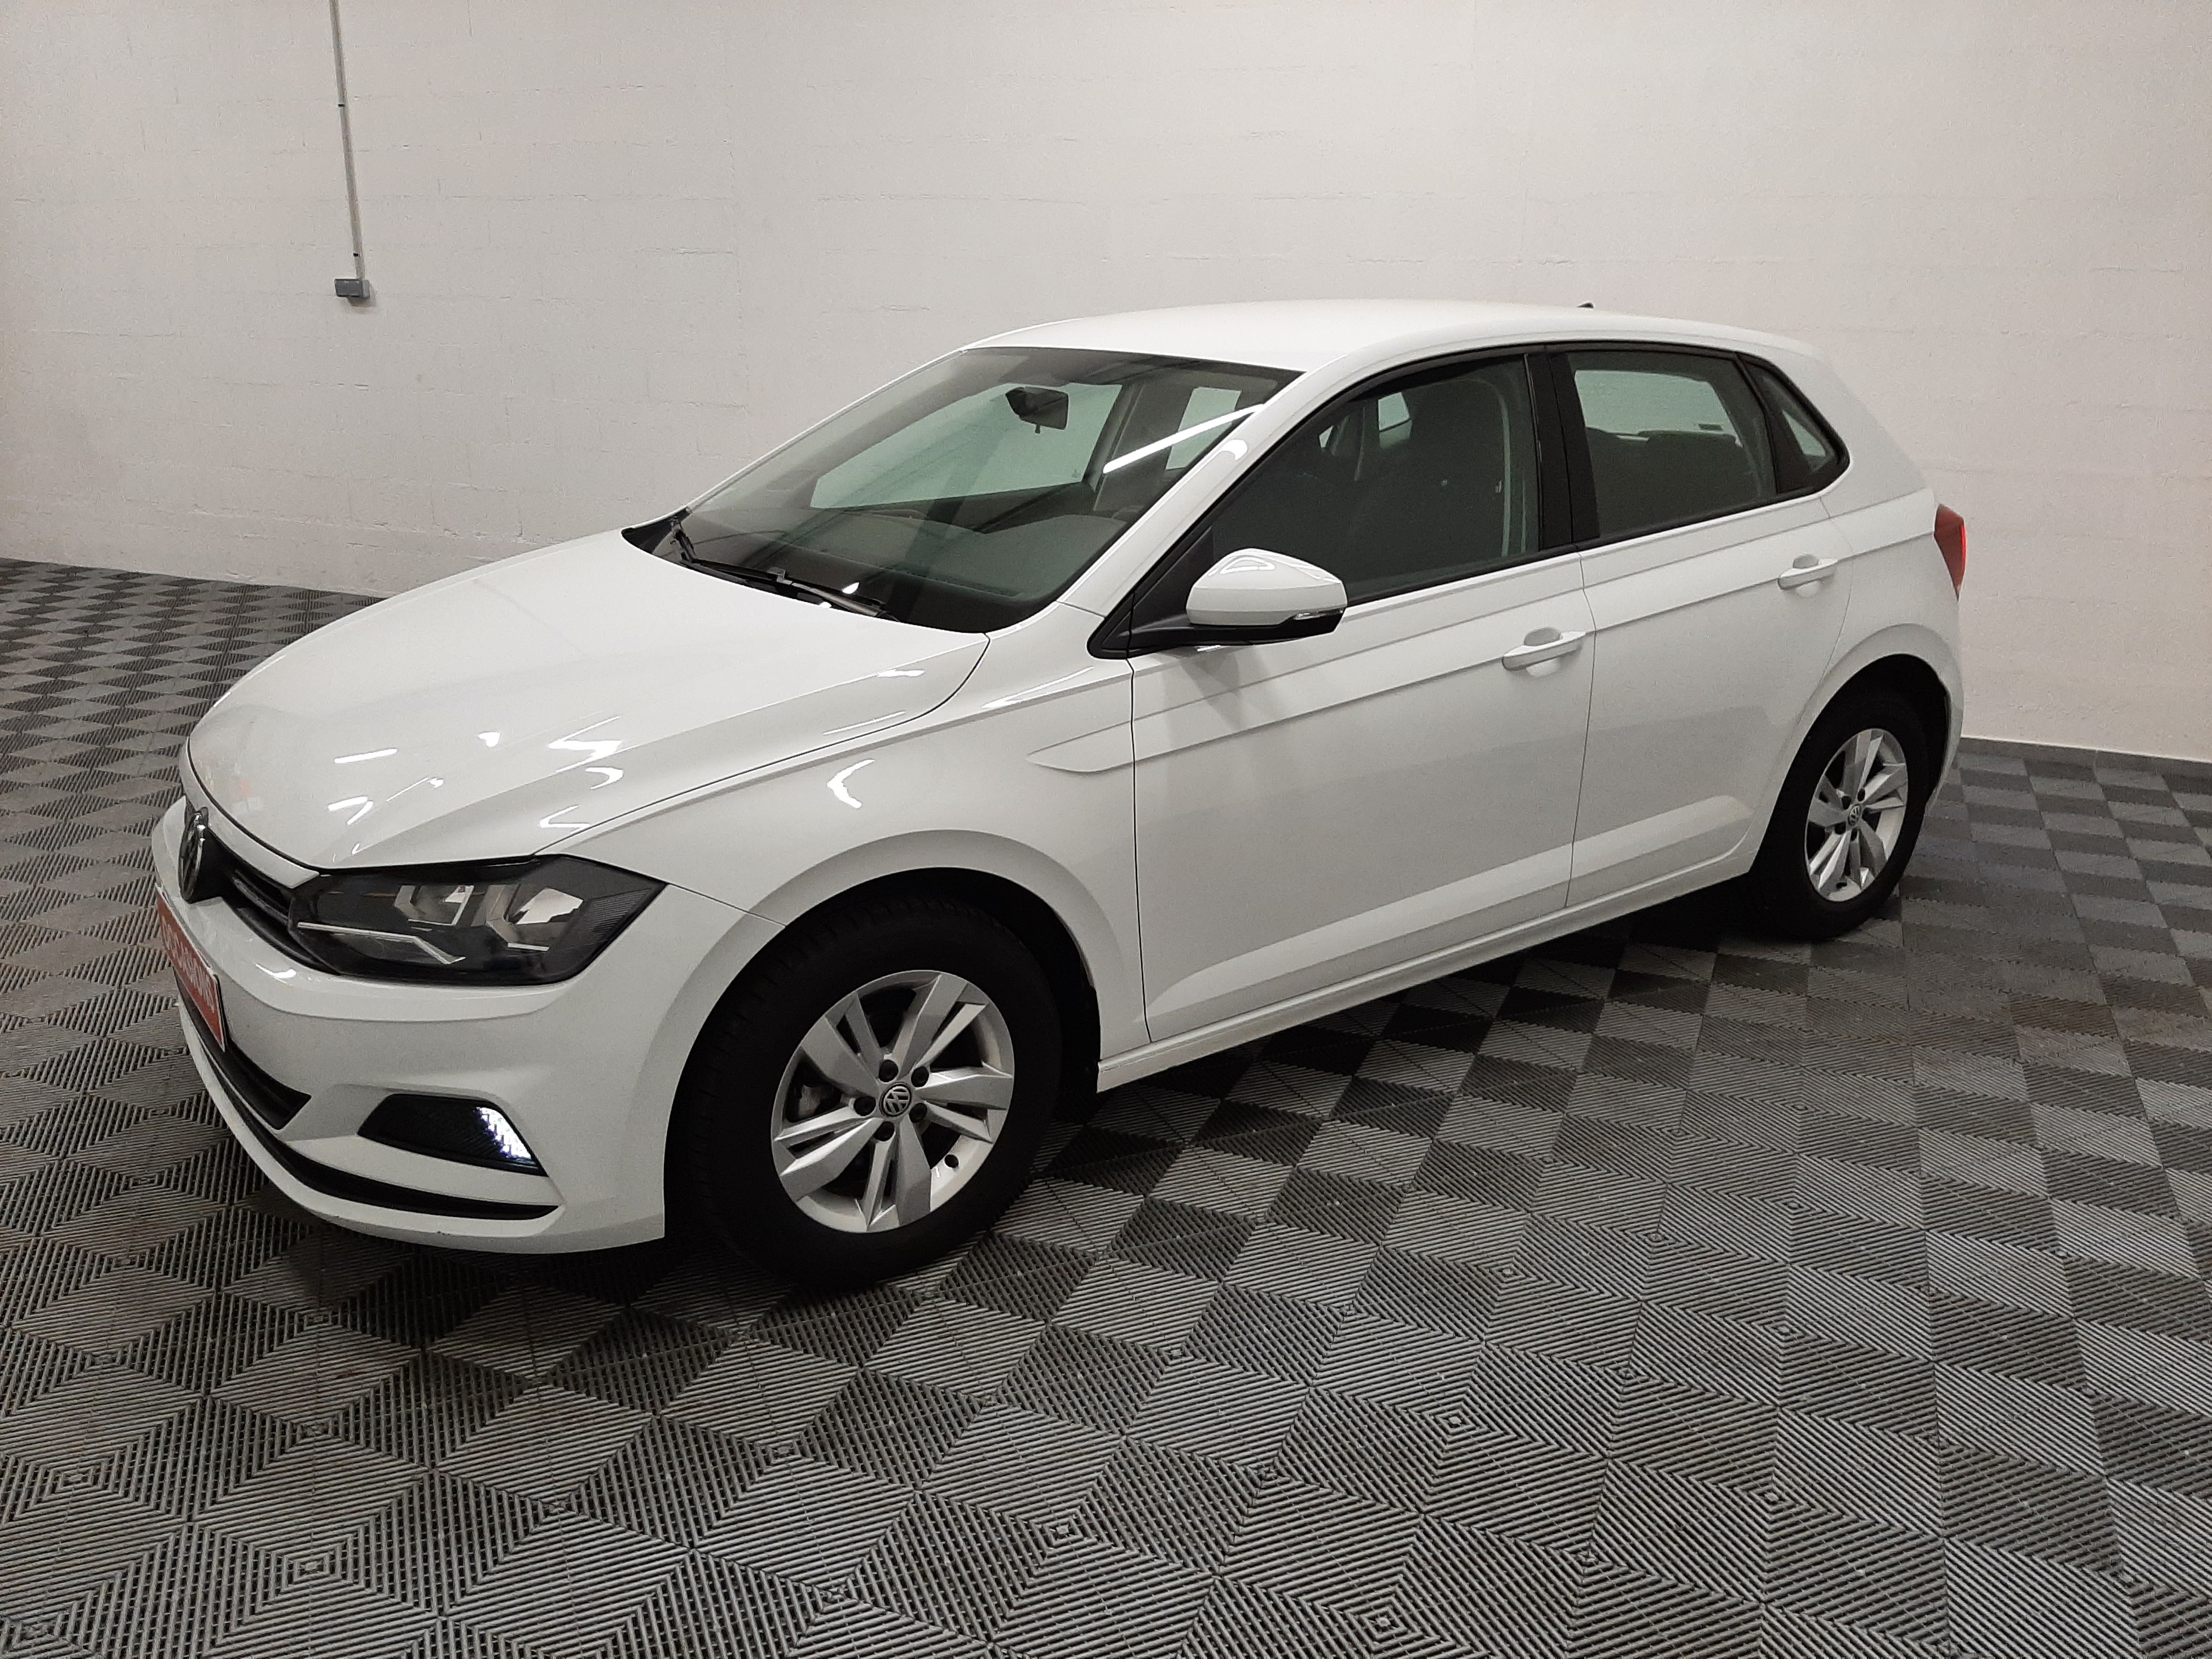 Photo du véhicule VOLKSWAGEN POLO ADVANCE 1.0 80 CV